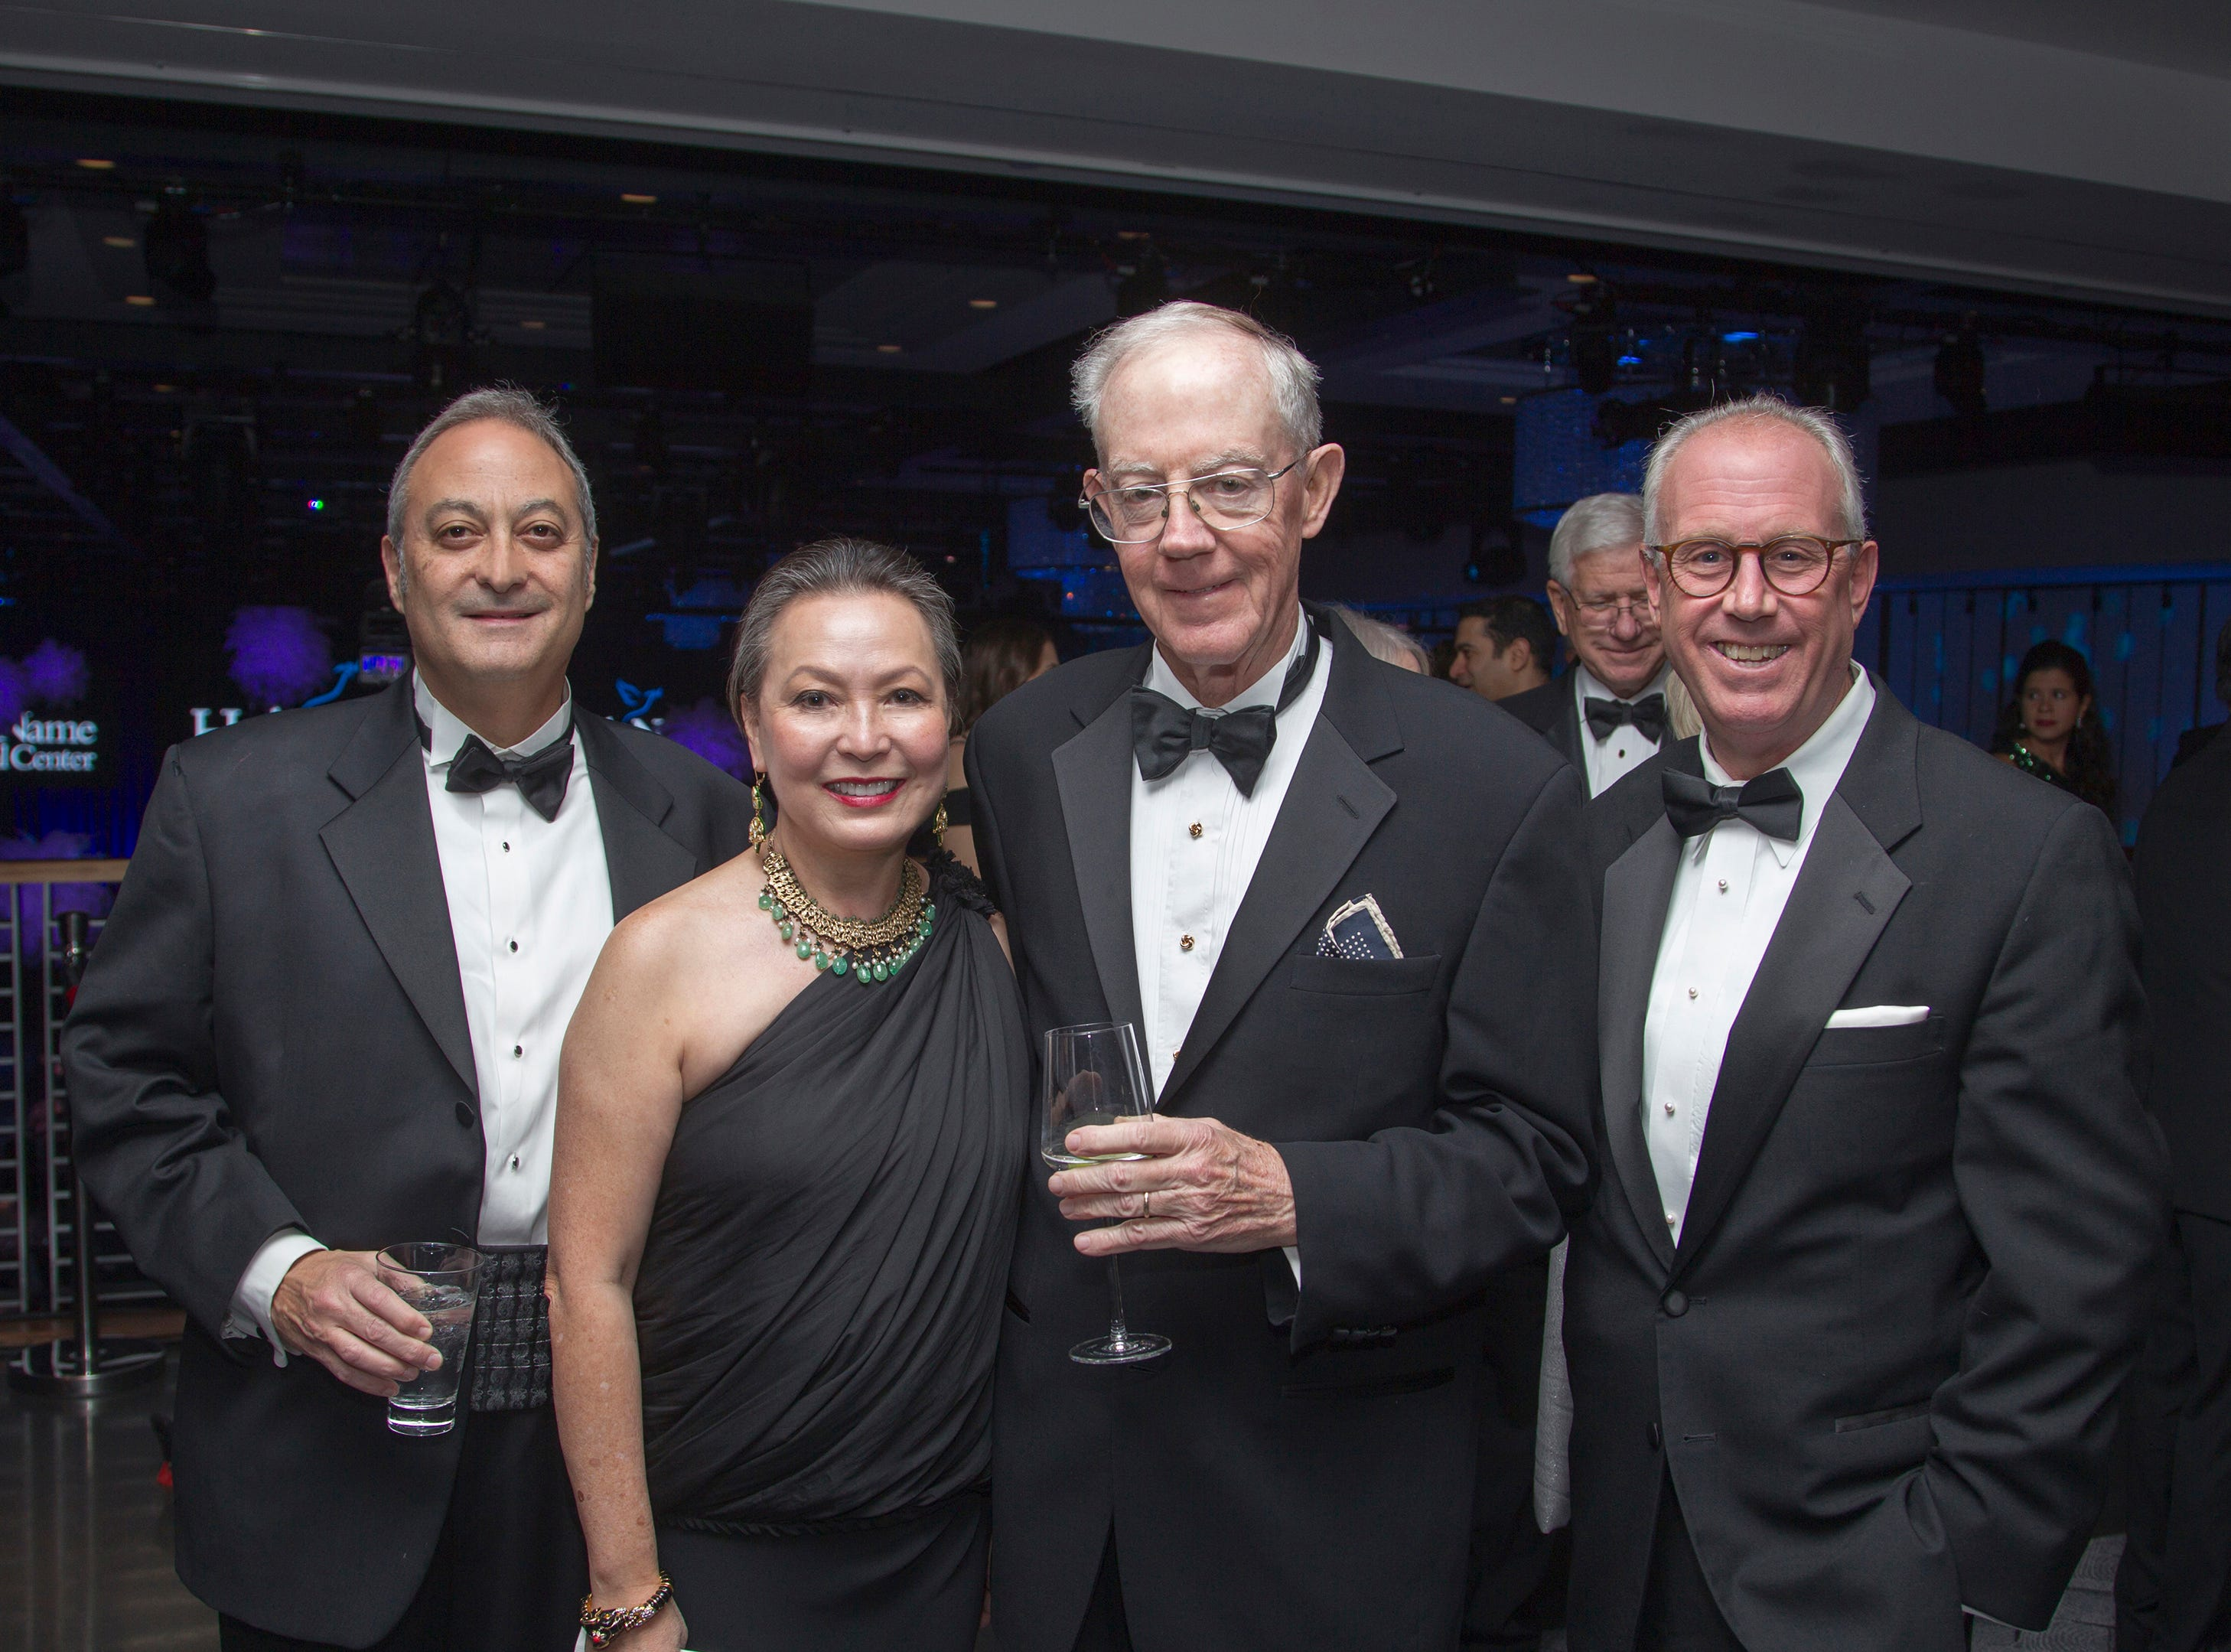 Fernando Garip, Angelica Berrie, John Geraghty, Joseph Parisi, Jr. Holy Name Medical Center held its 2018 Founders Ball in NYC at Ziegfeld Ballroom. 11/17/2018